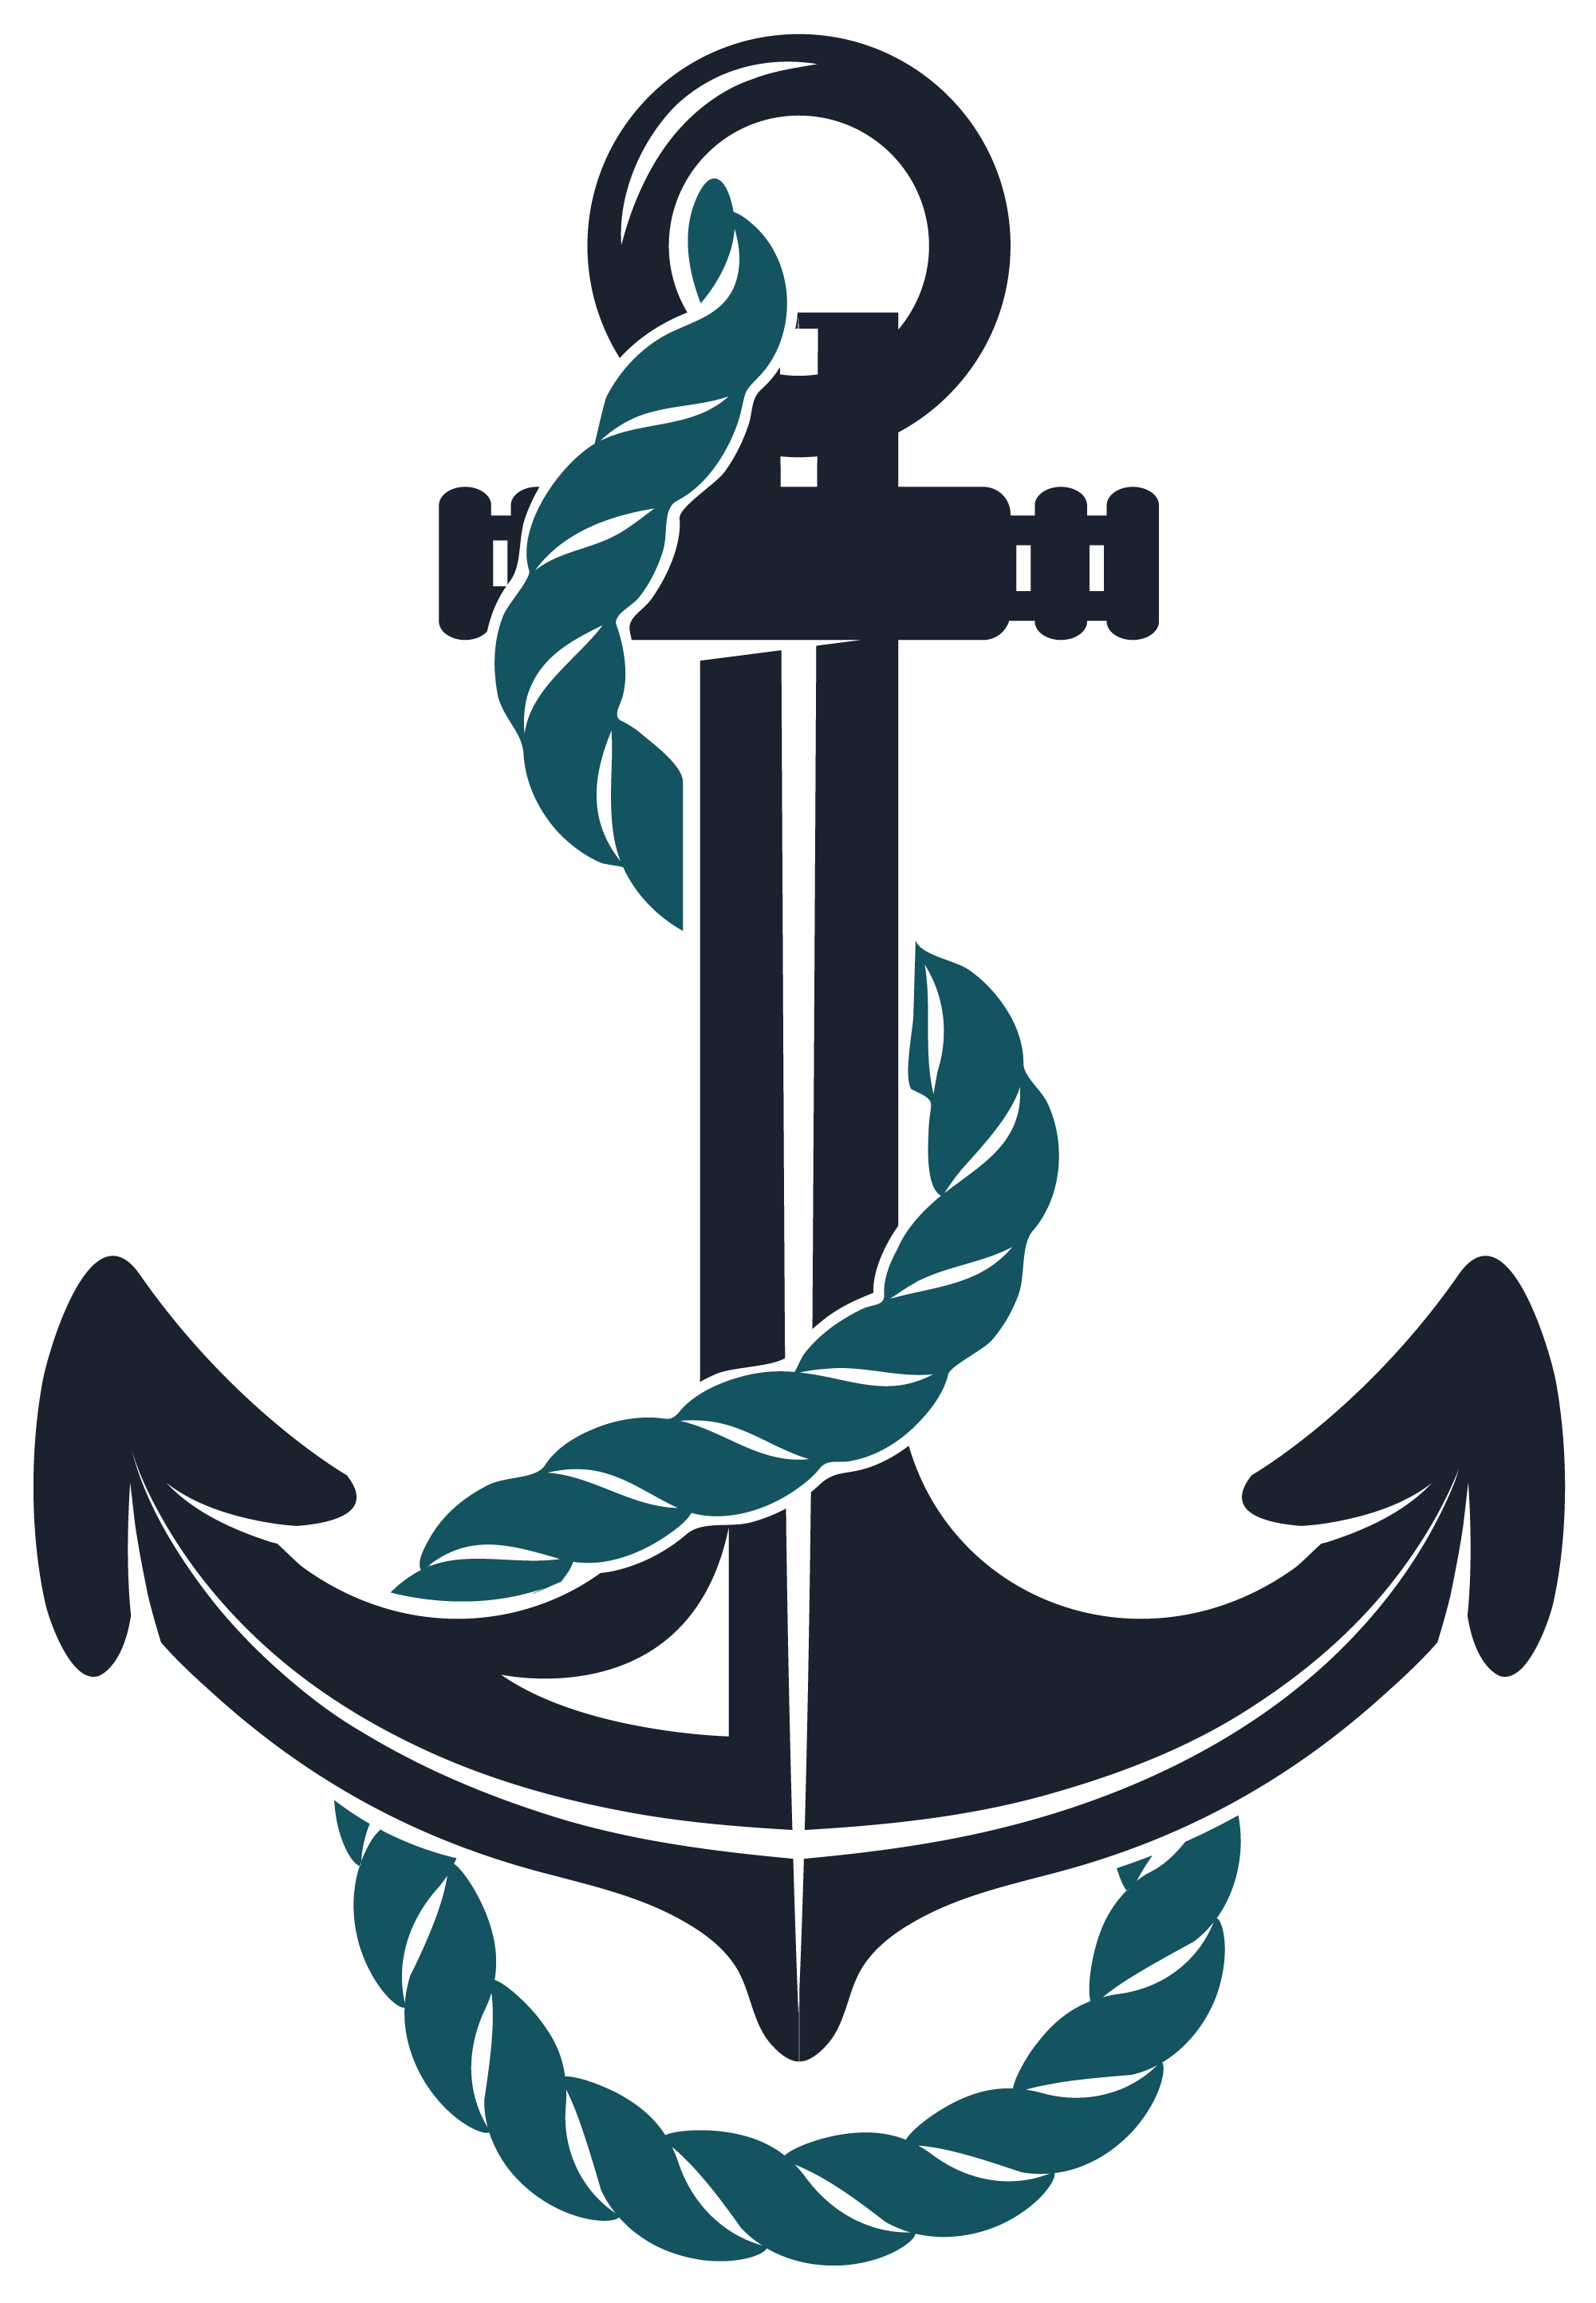 Anchor clip art png. Hand painted black rope